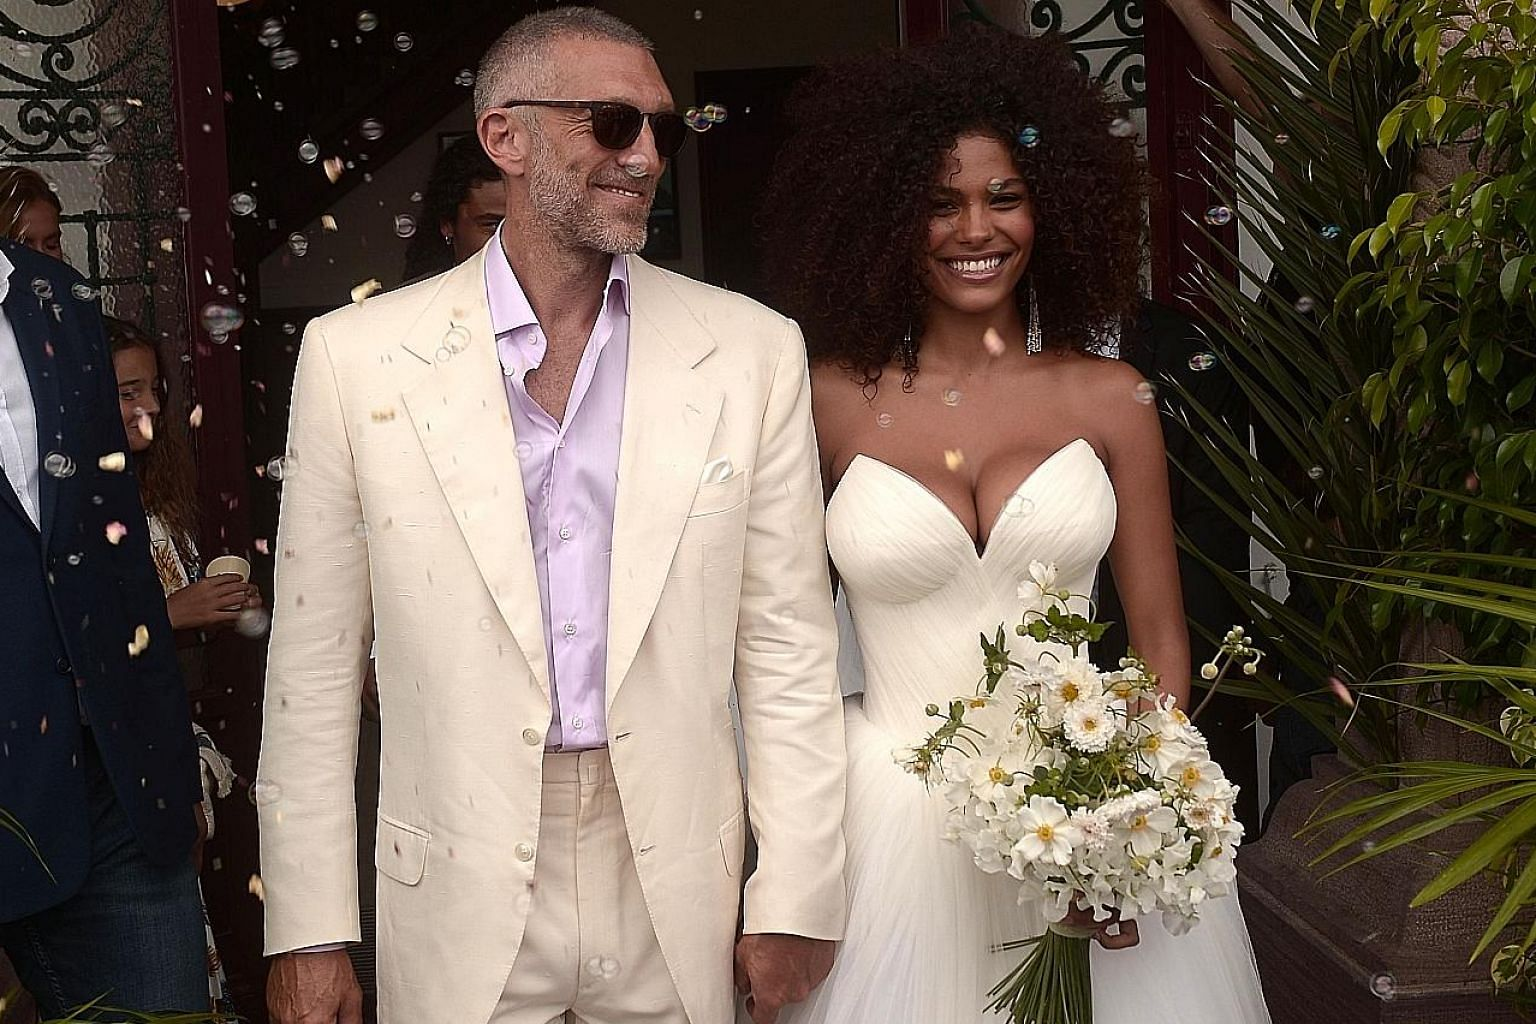 Vincent Cassel tied the knot with Tina Kunakey in south-western France.